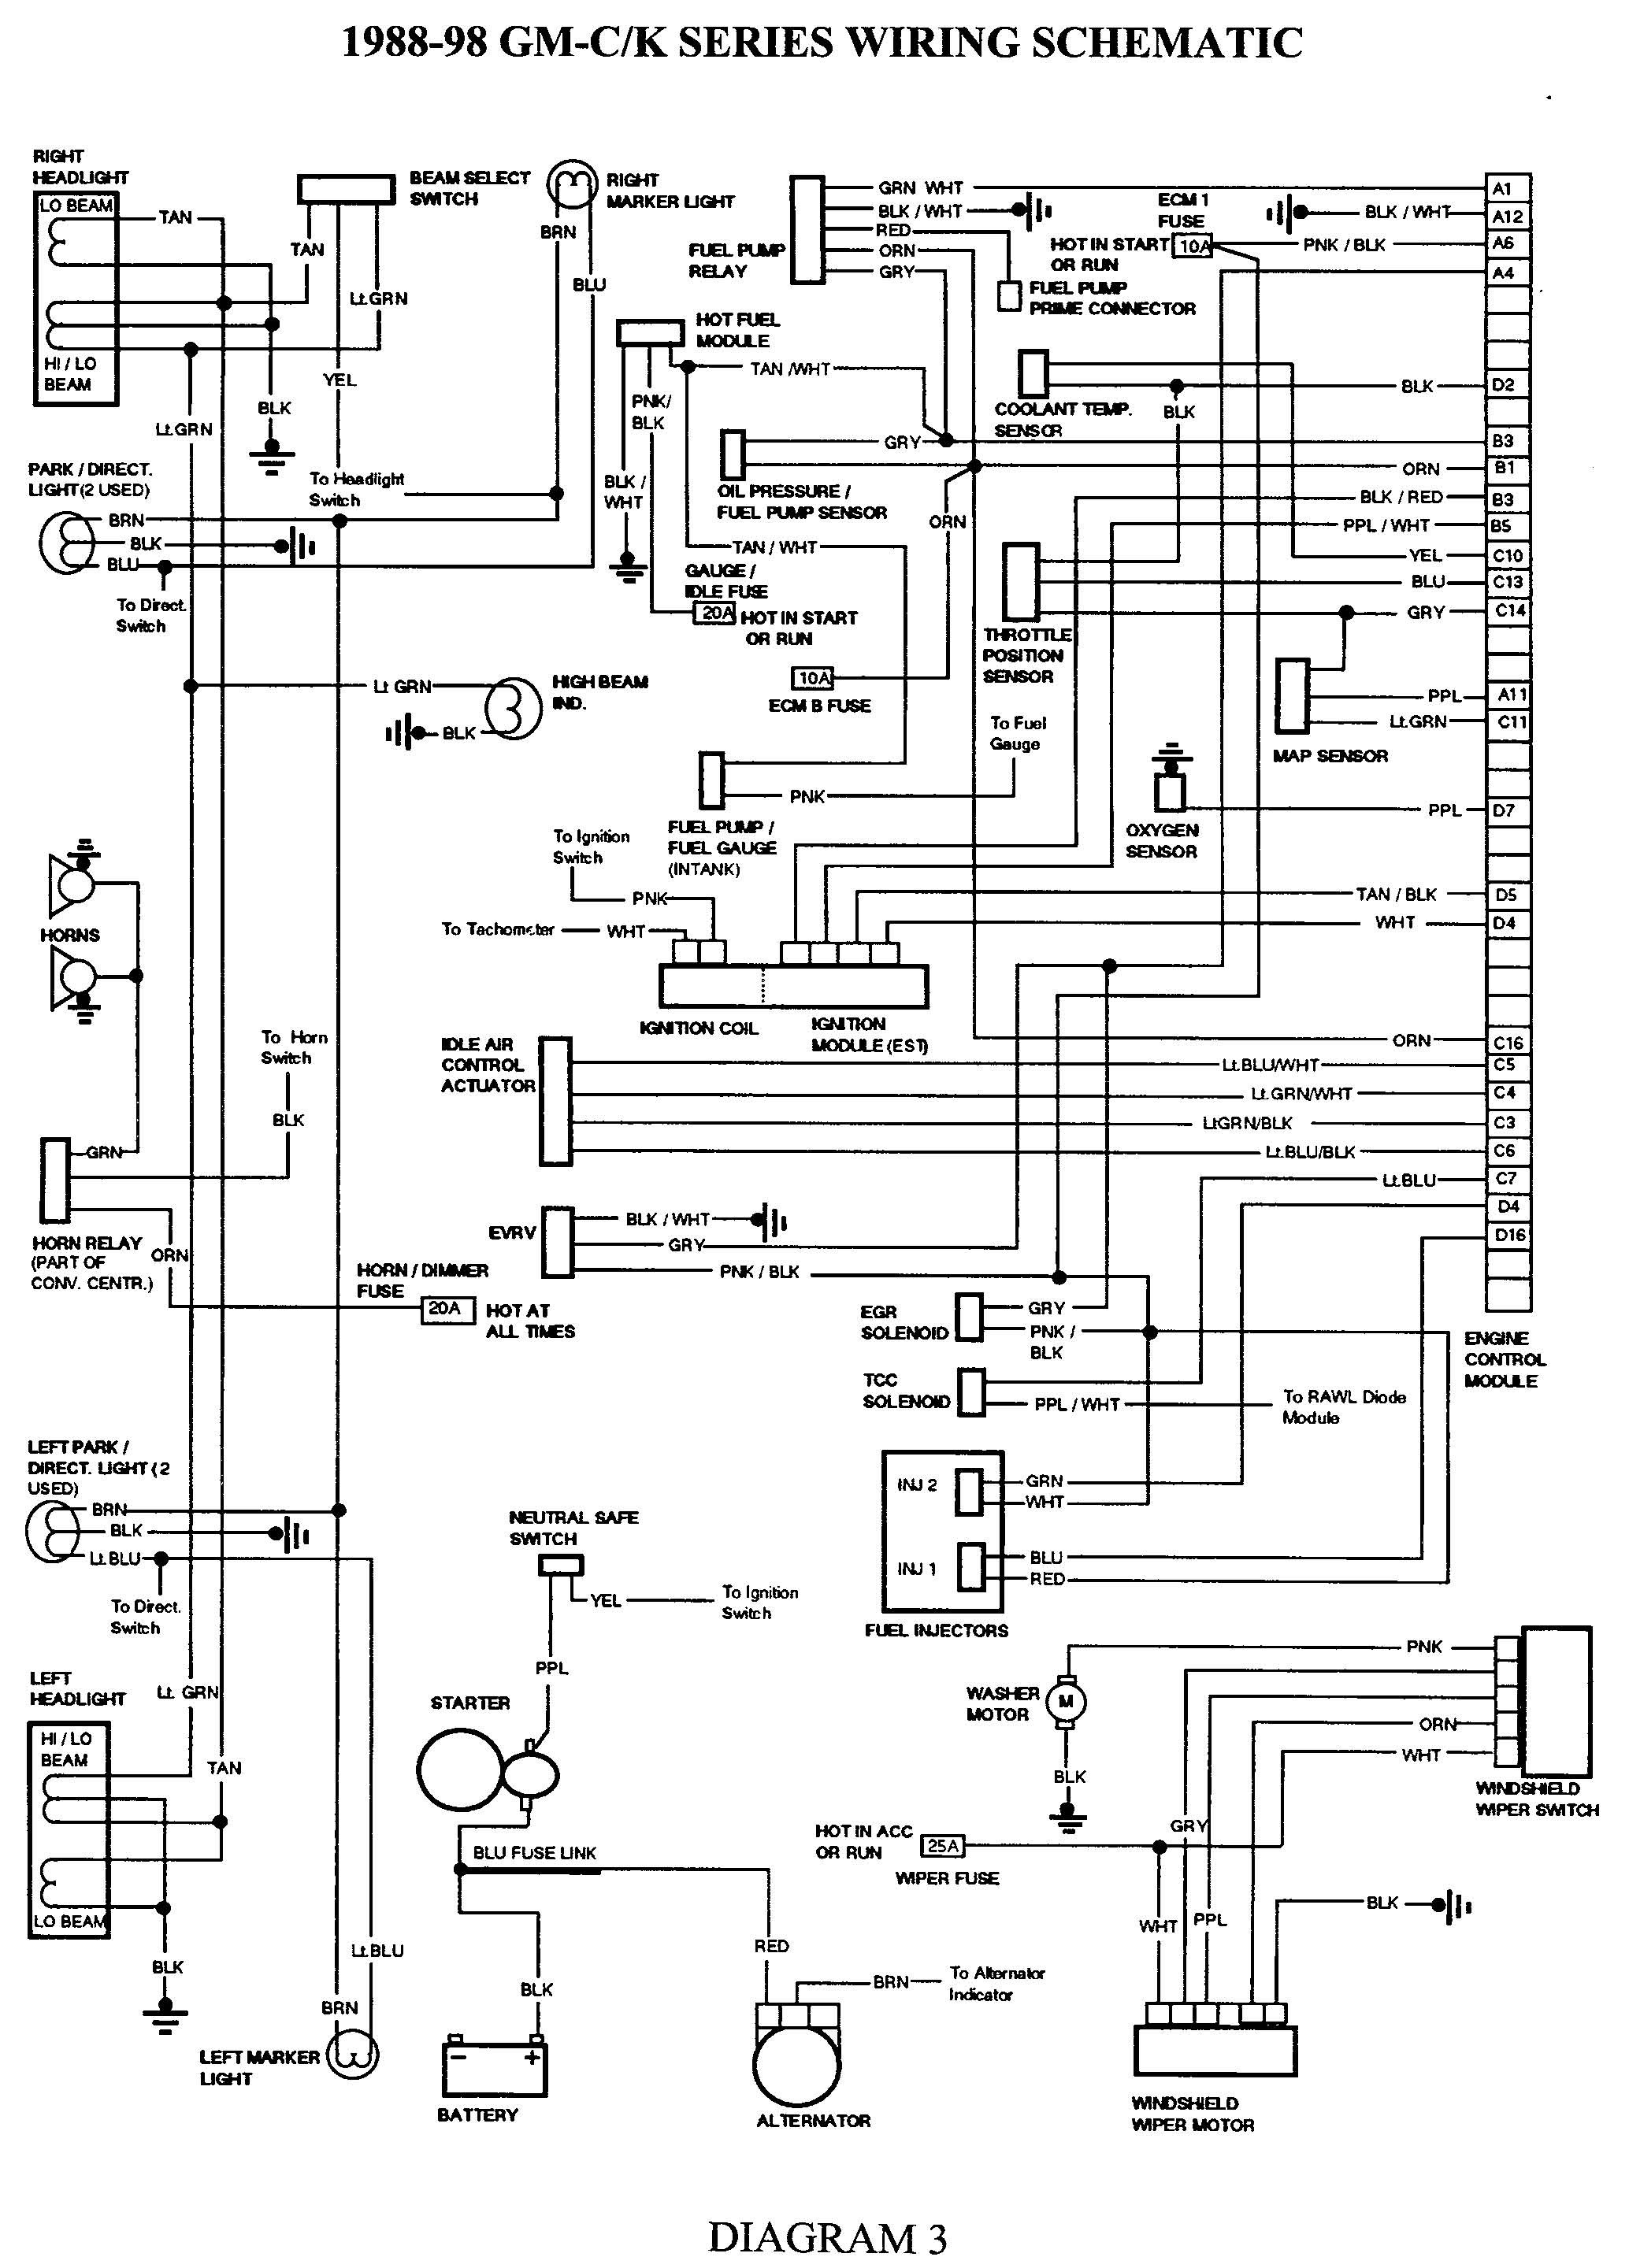 s10 headlight wiring diagram wiring diagram 1998 Chevy S10 Wiring Diagram for Lights